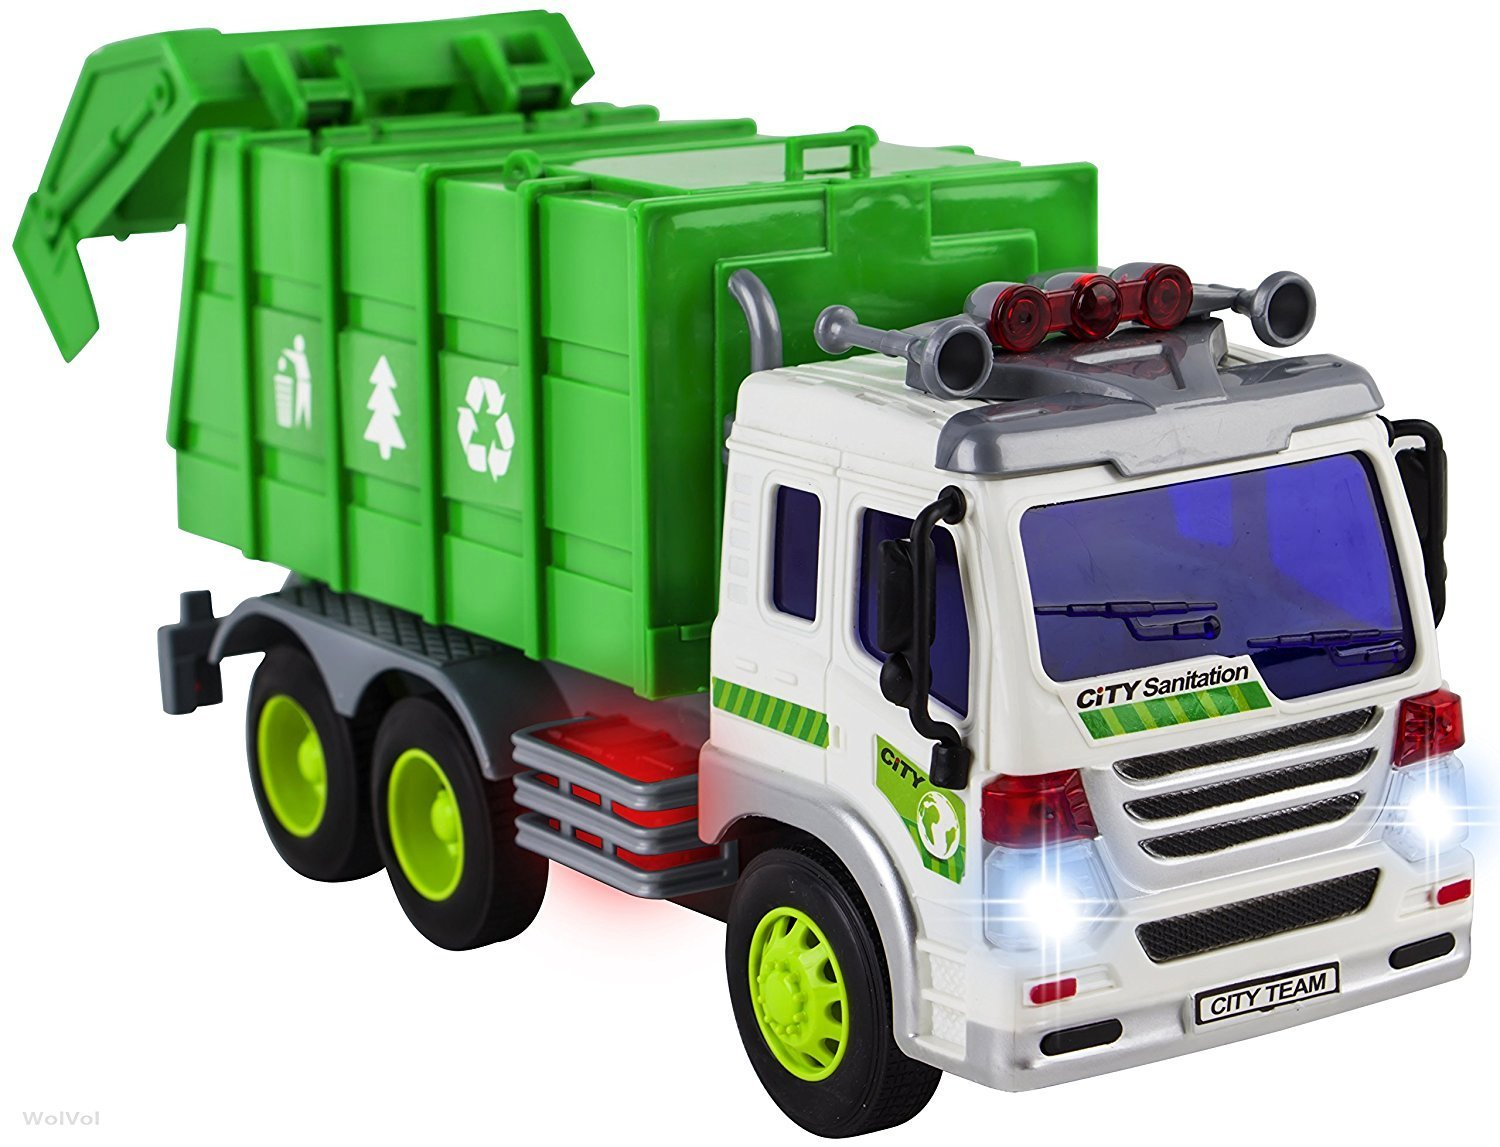 Buy Garbage Truck Toy Now!